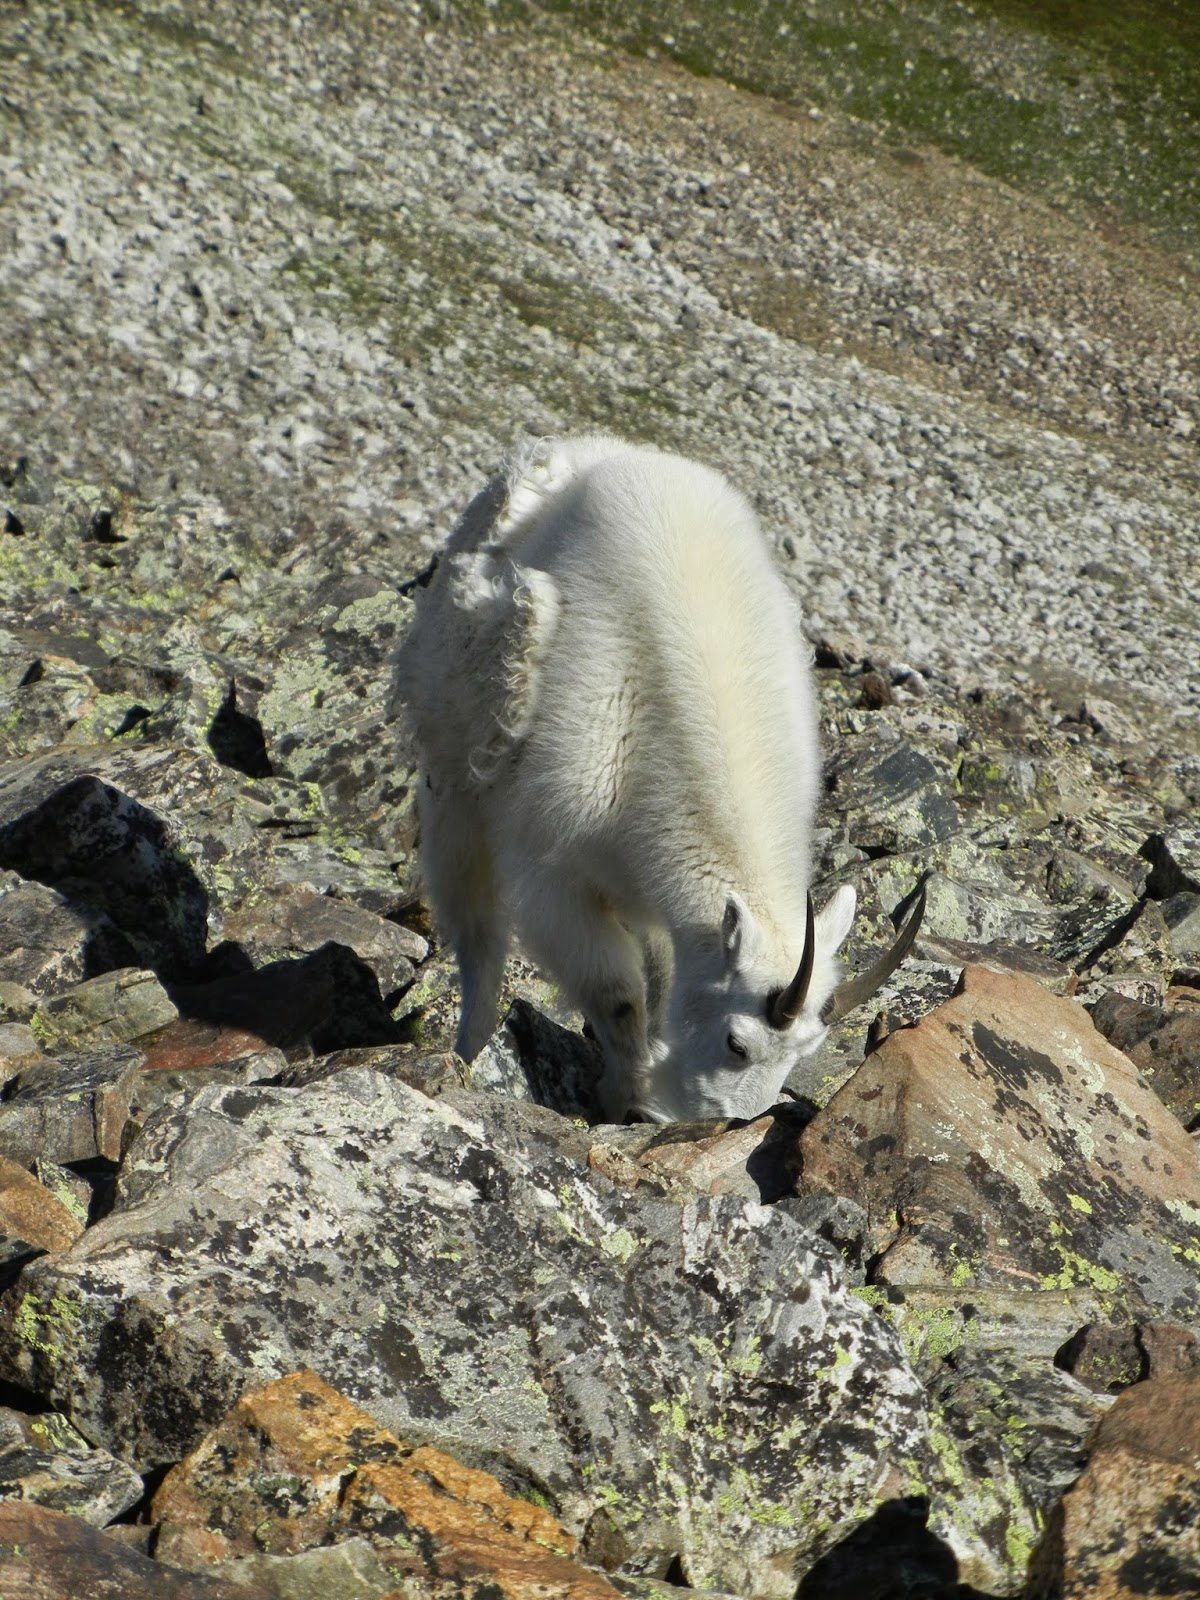 hike quandary peak advice photos colorado 14er mountain goat